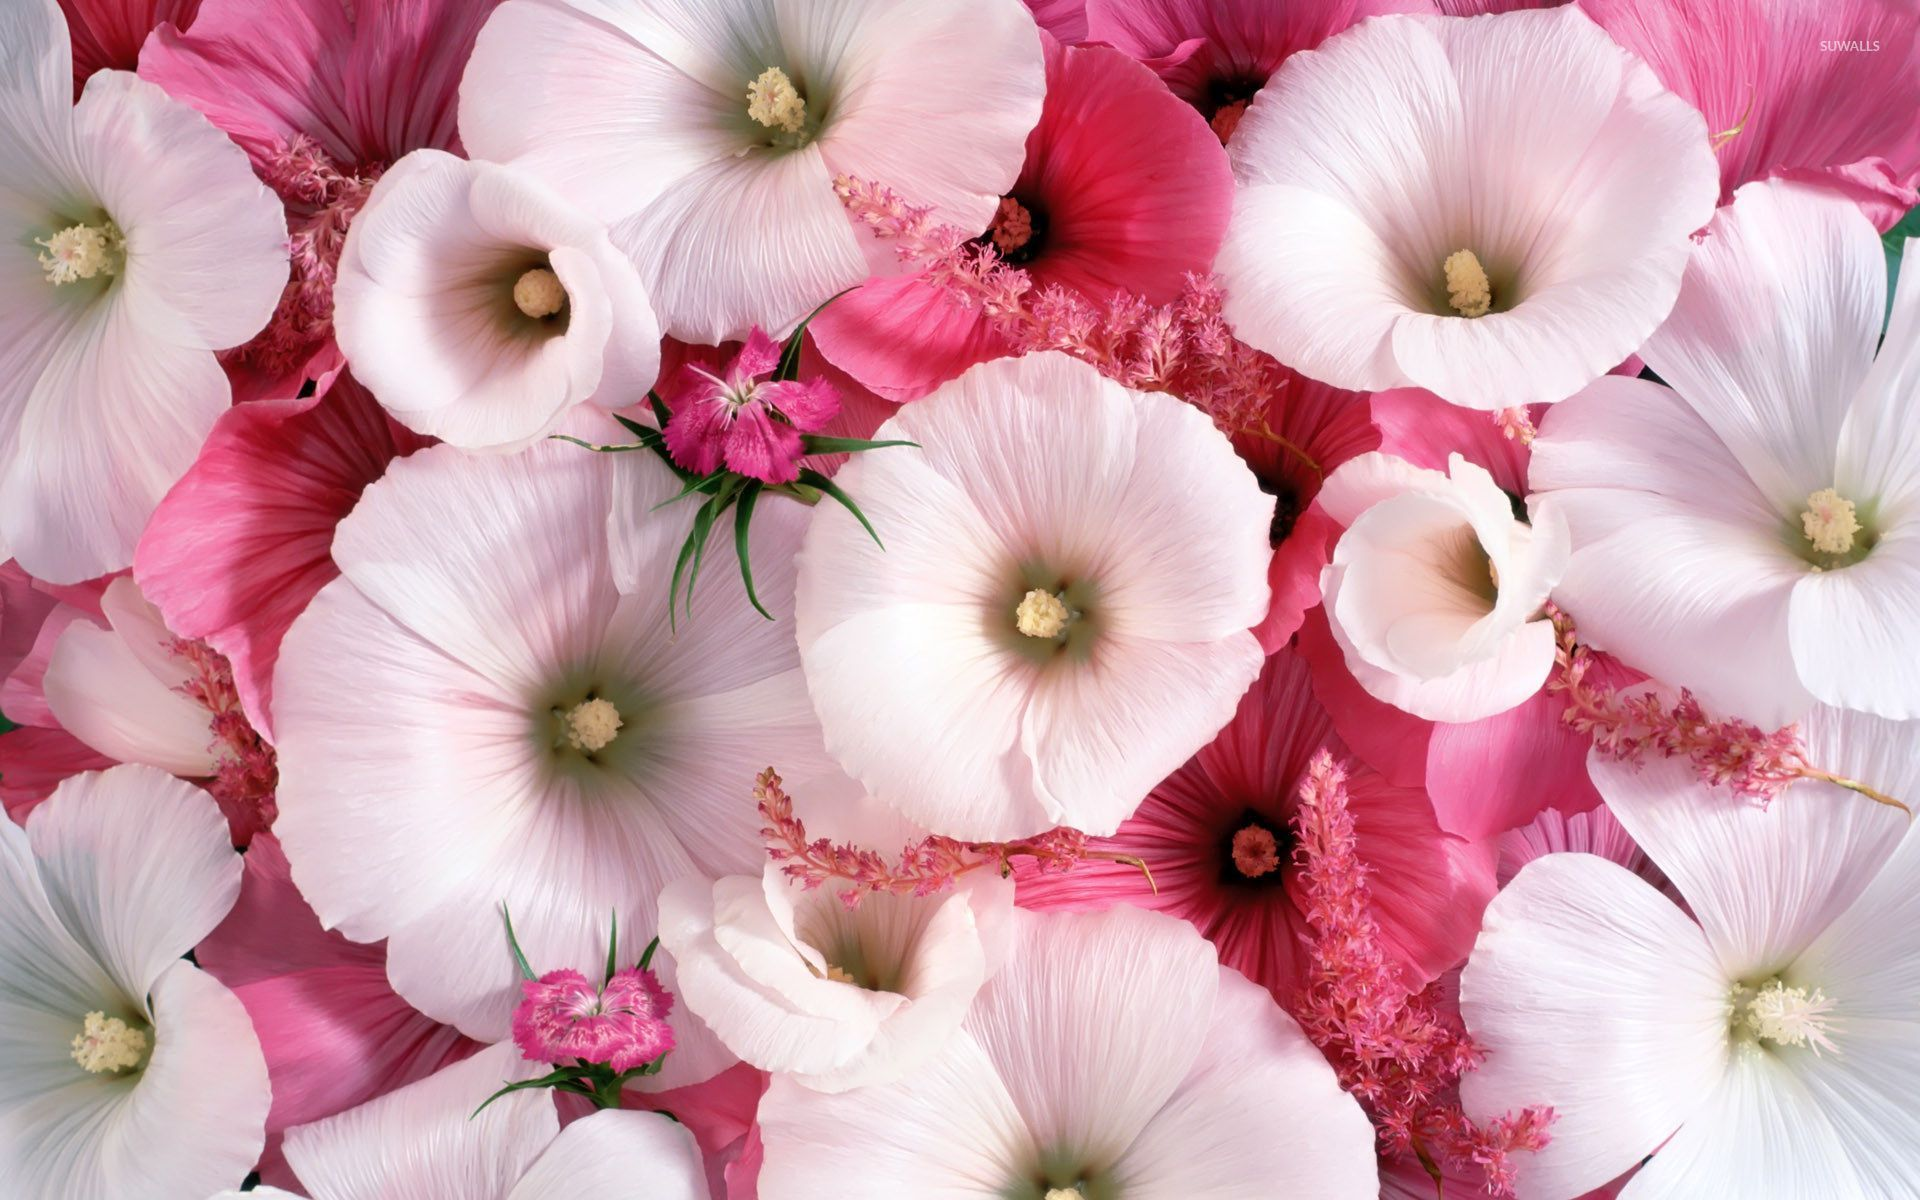 White and pink hollyhocks wallpaper - Flower wallpapers ...